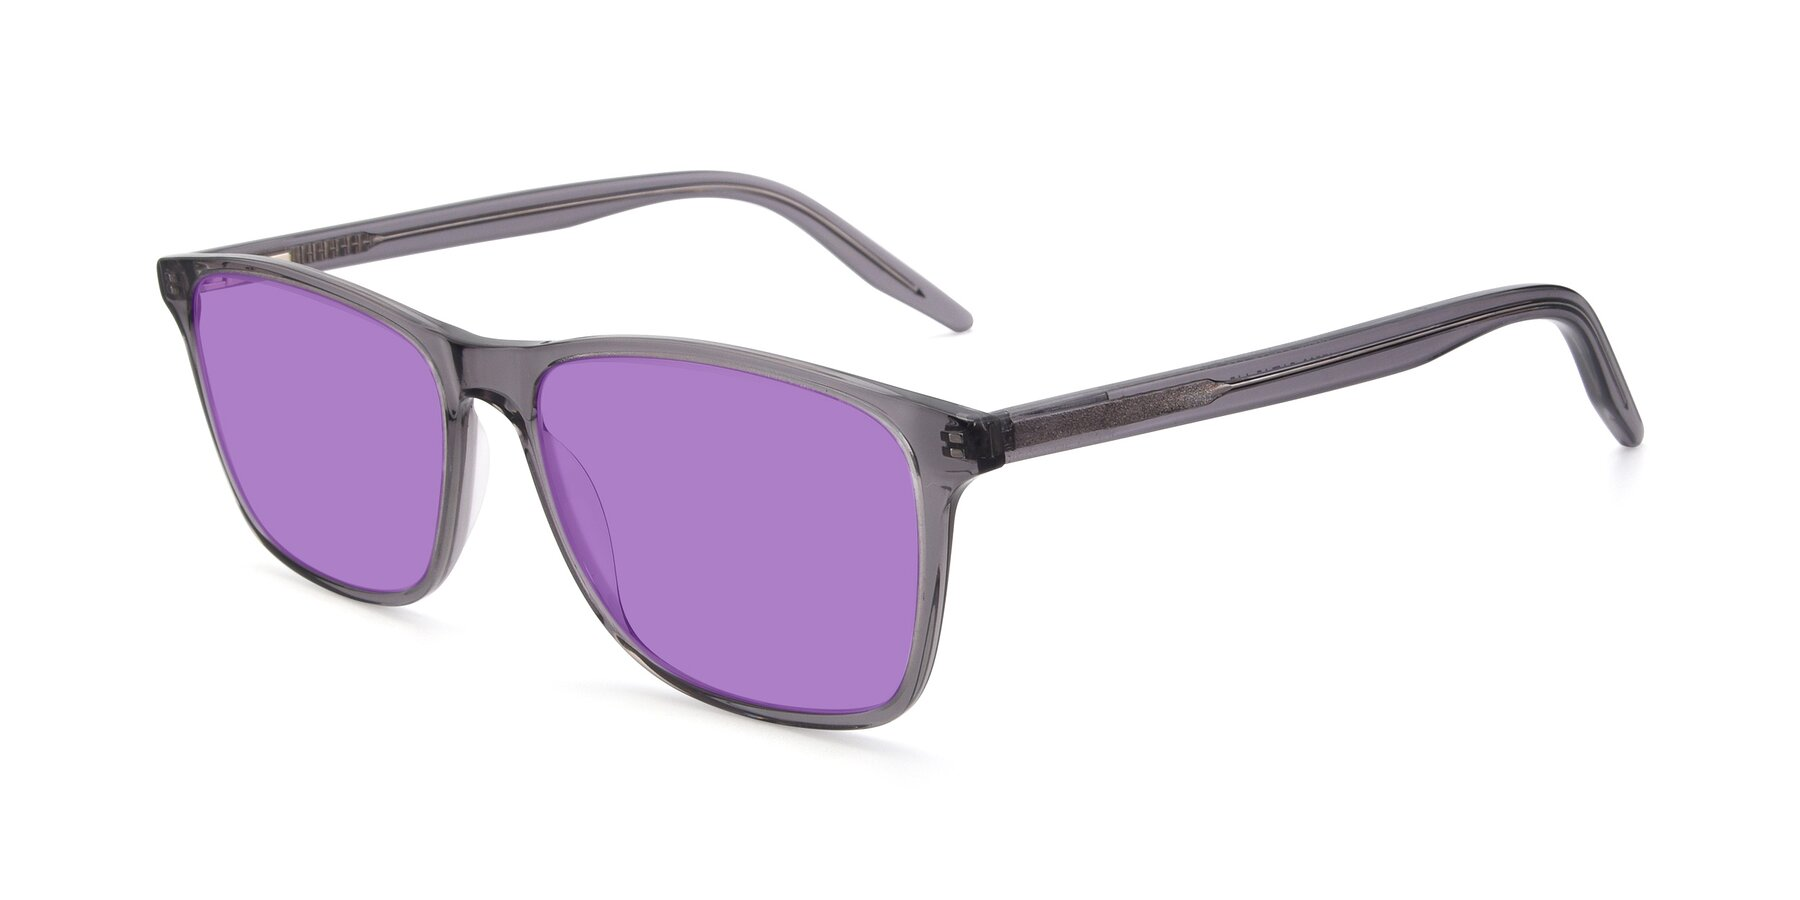 Angle of 17500 in Transparent Grey with Medium Purple Tinted Lenses